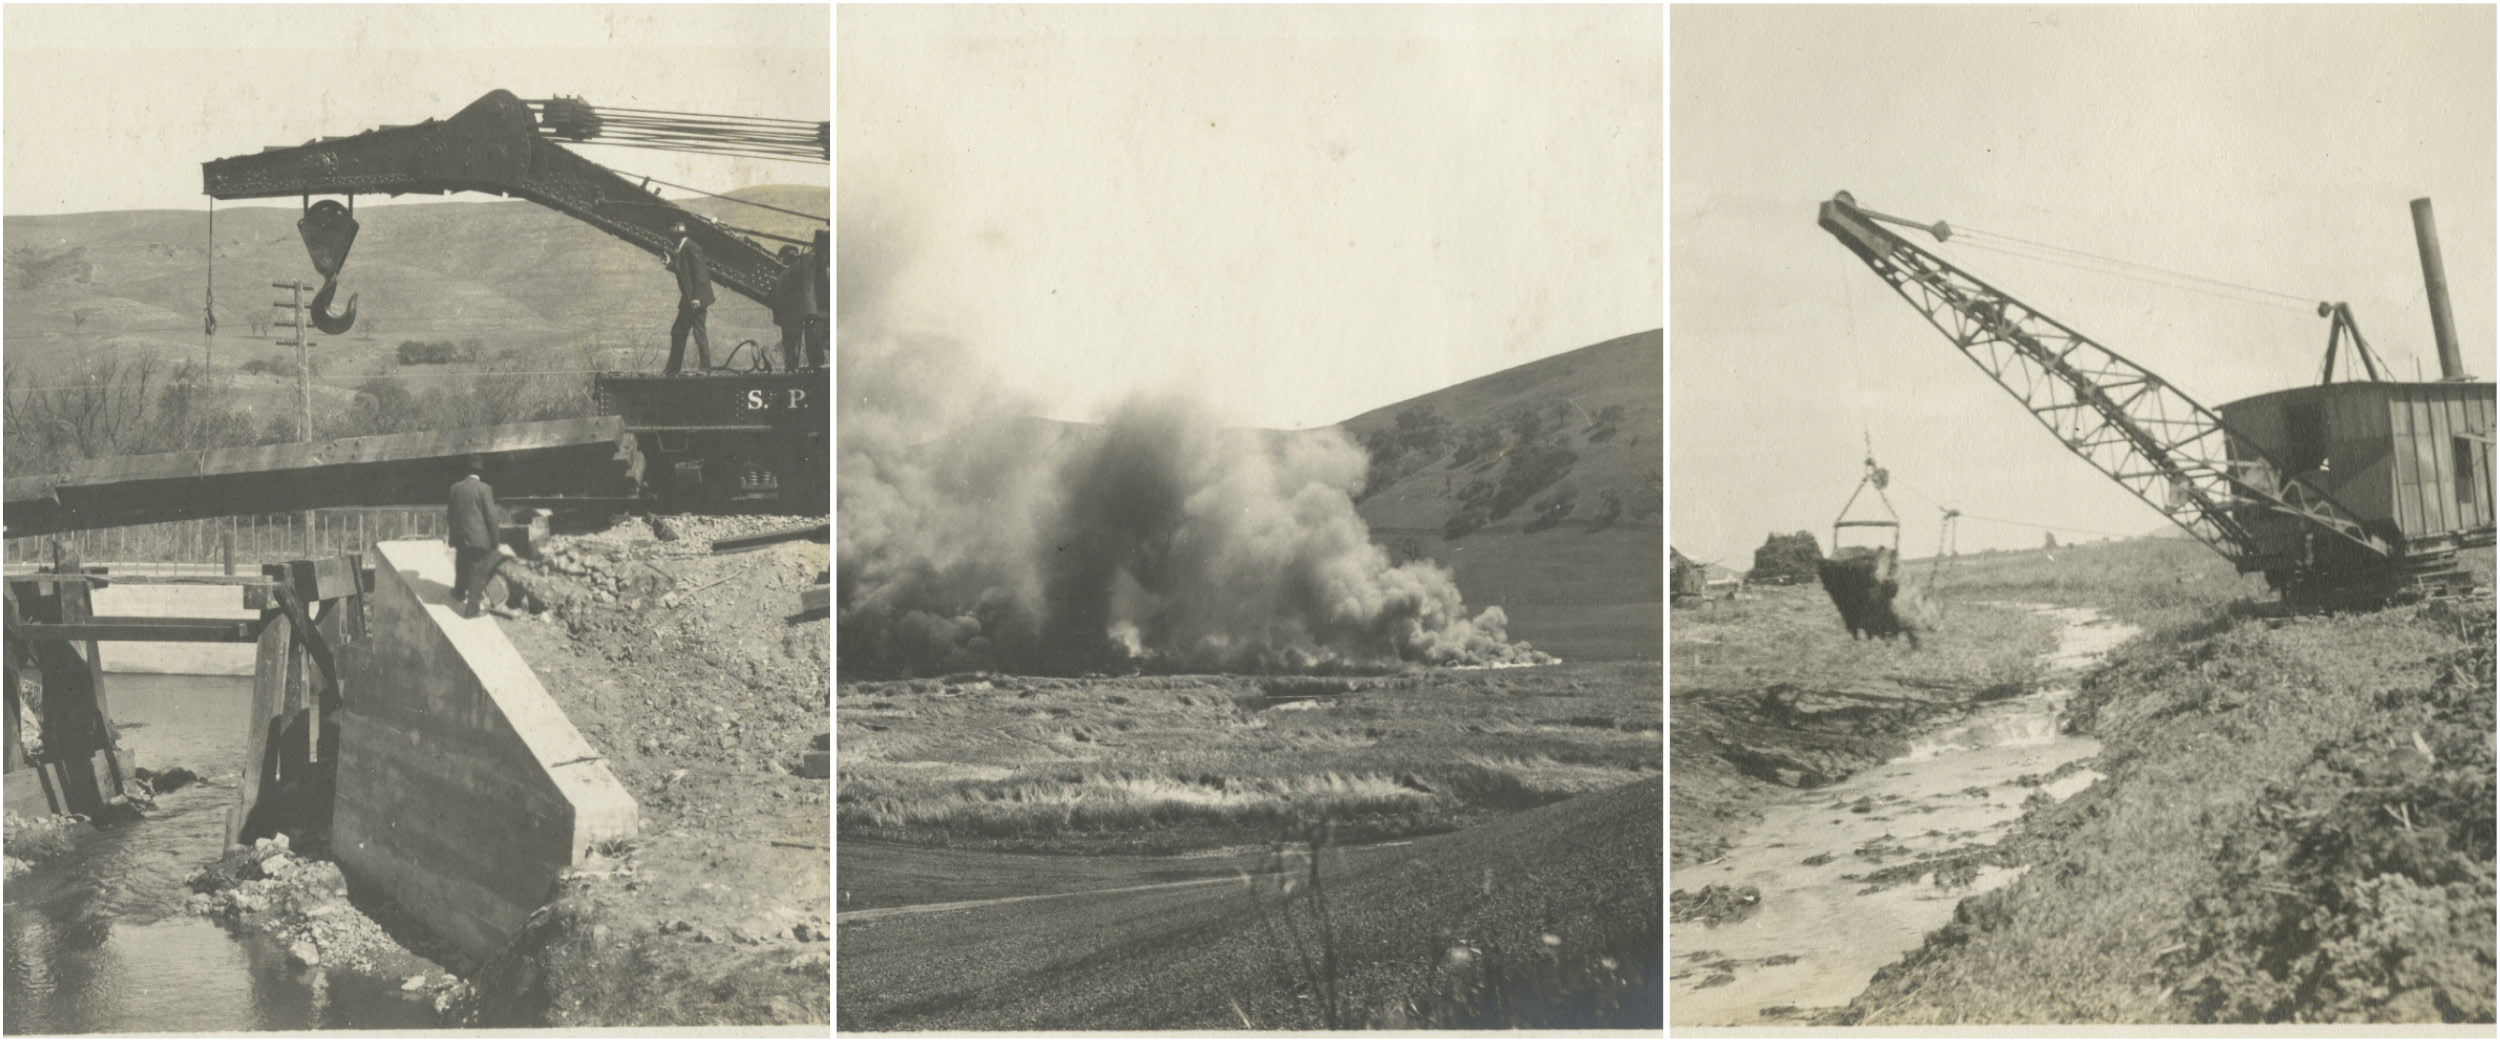 Historic photos of the destructive tactics used during the 1916 reclamation of the Laguna Seca